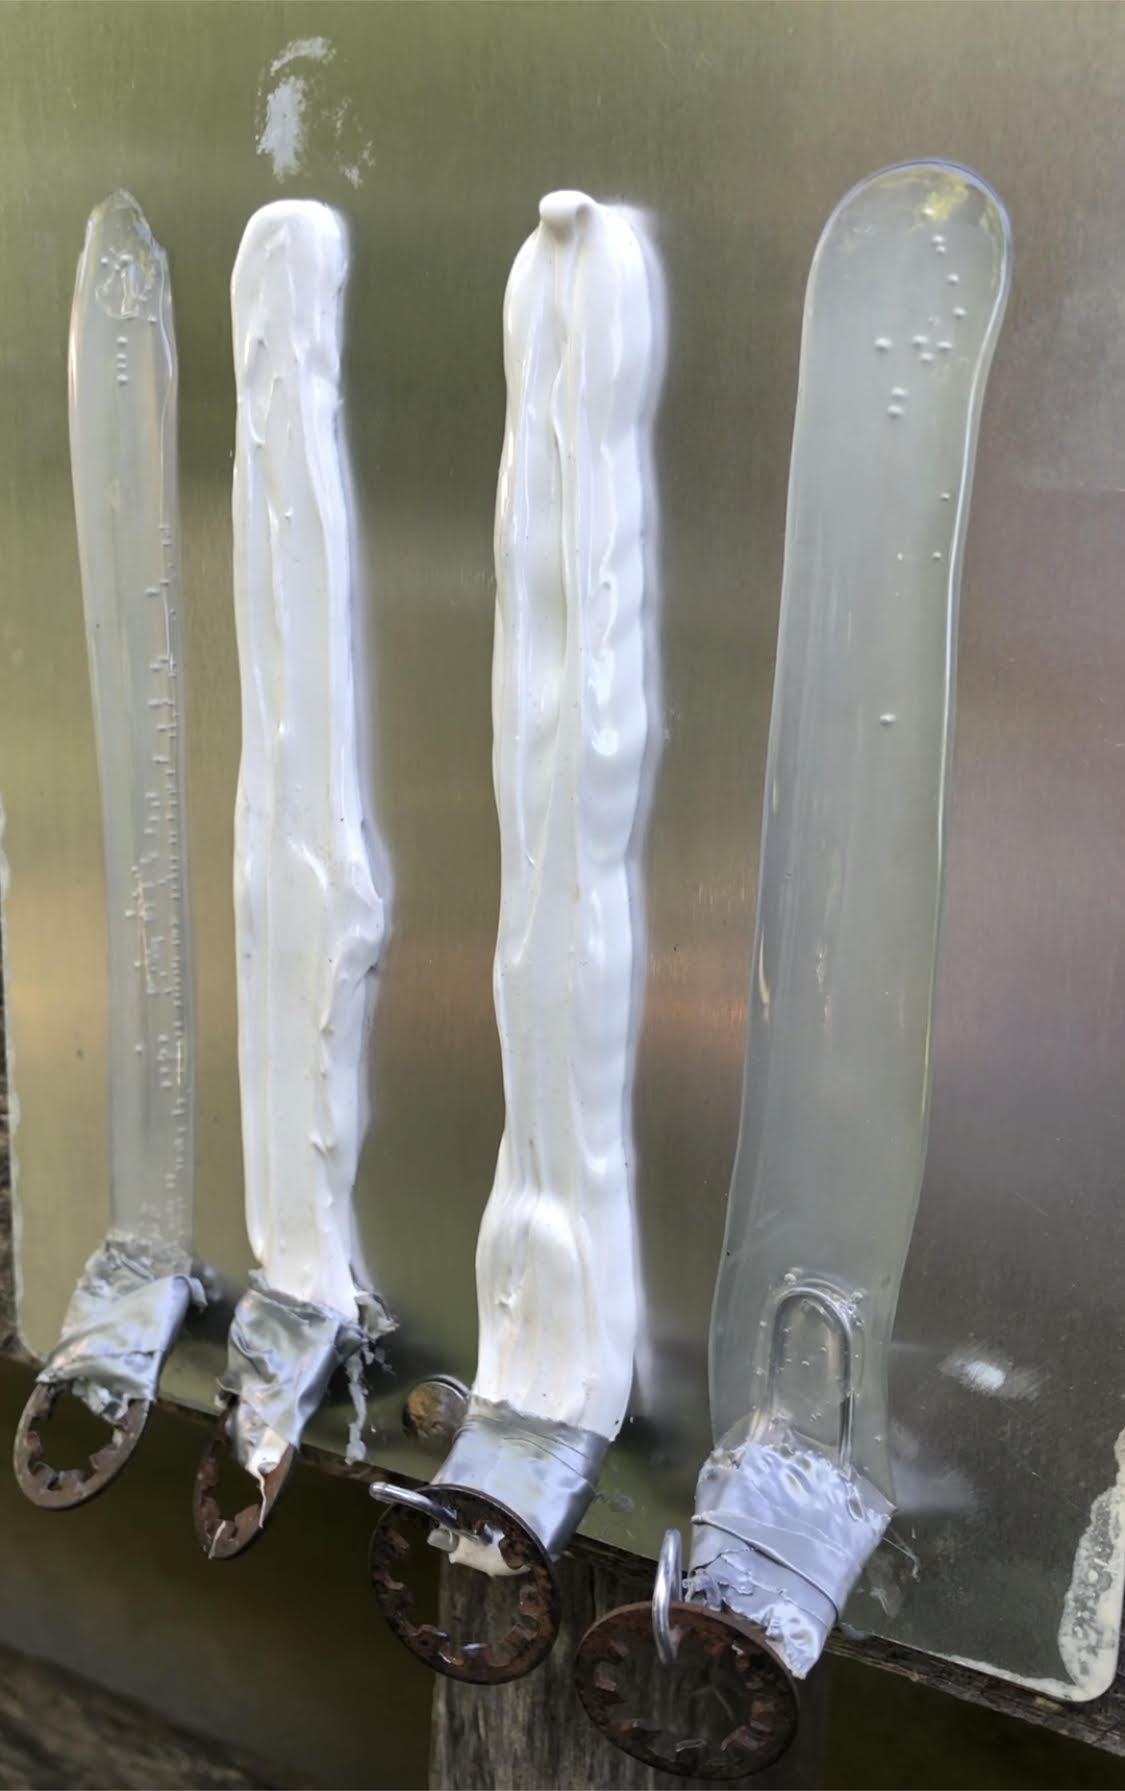 Image of 4 boat sealant strips on aluminum, ready for adhesion testing with a crane scale.